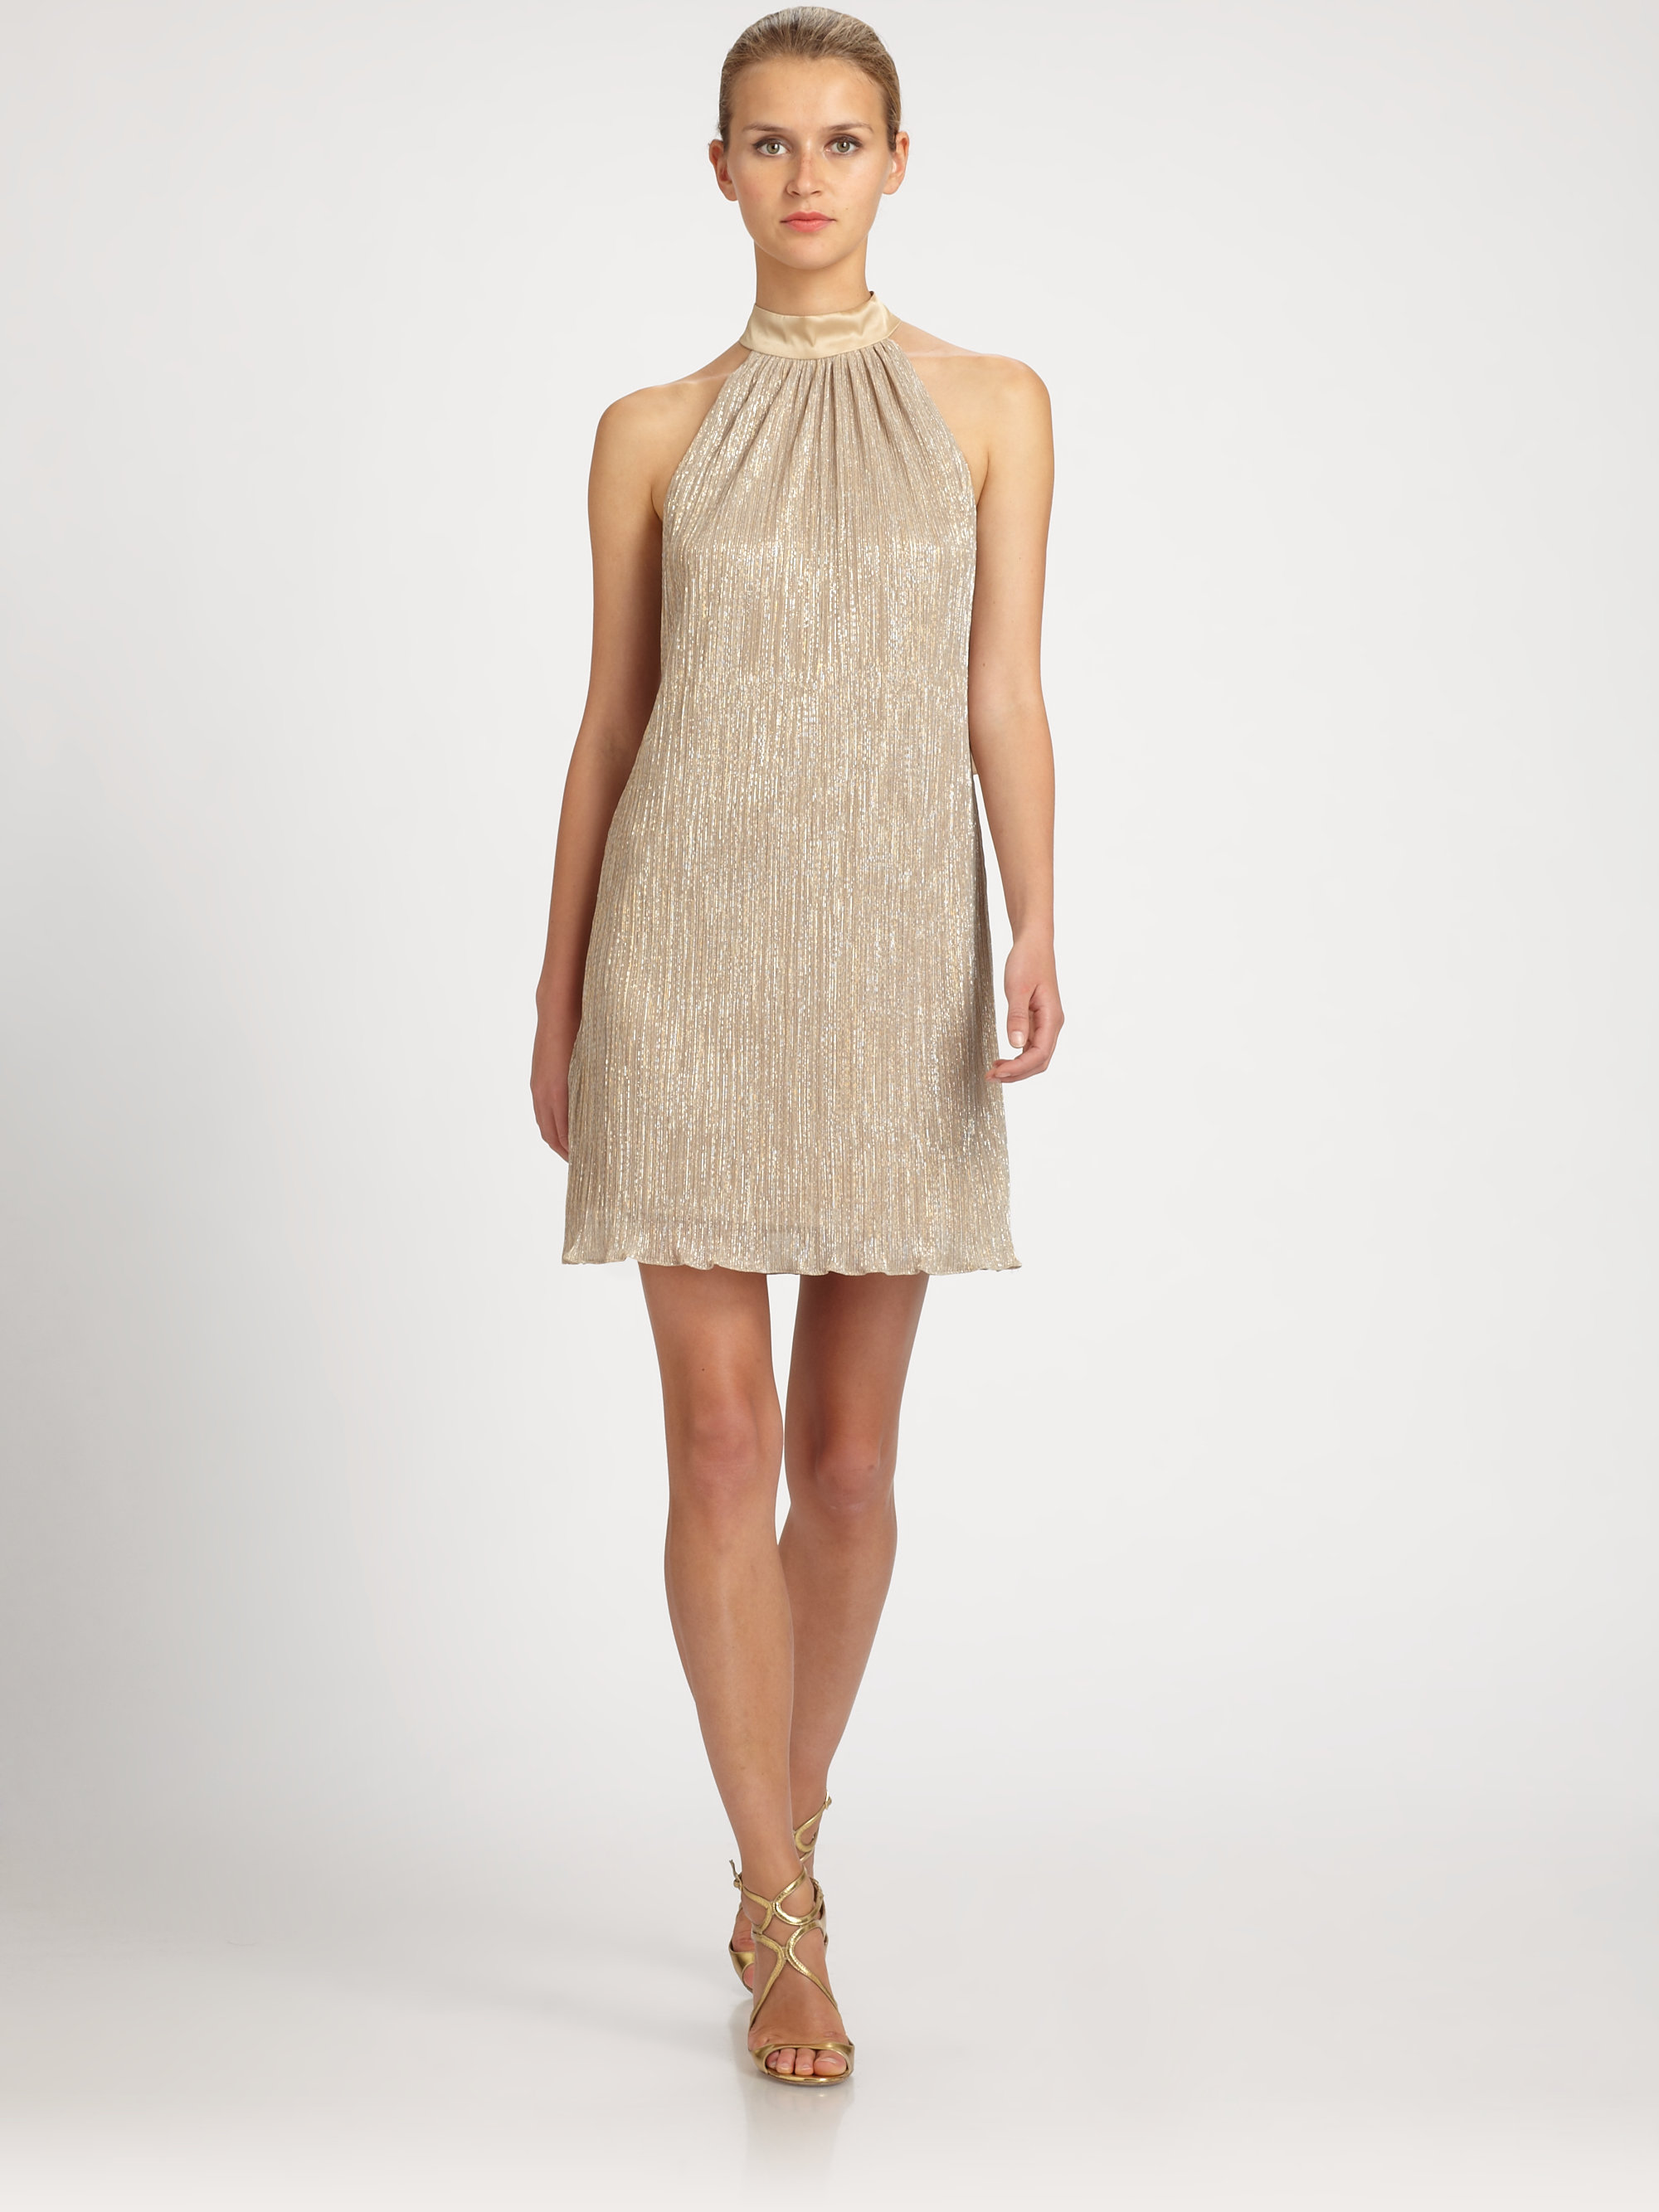 3657fcc93c98 Laundry by Shelli Segal Metallic Bowback Trapeze Dress in Natural - Lyst